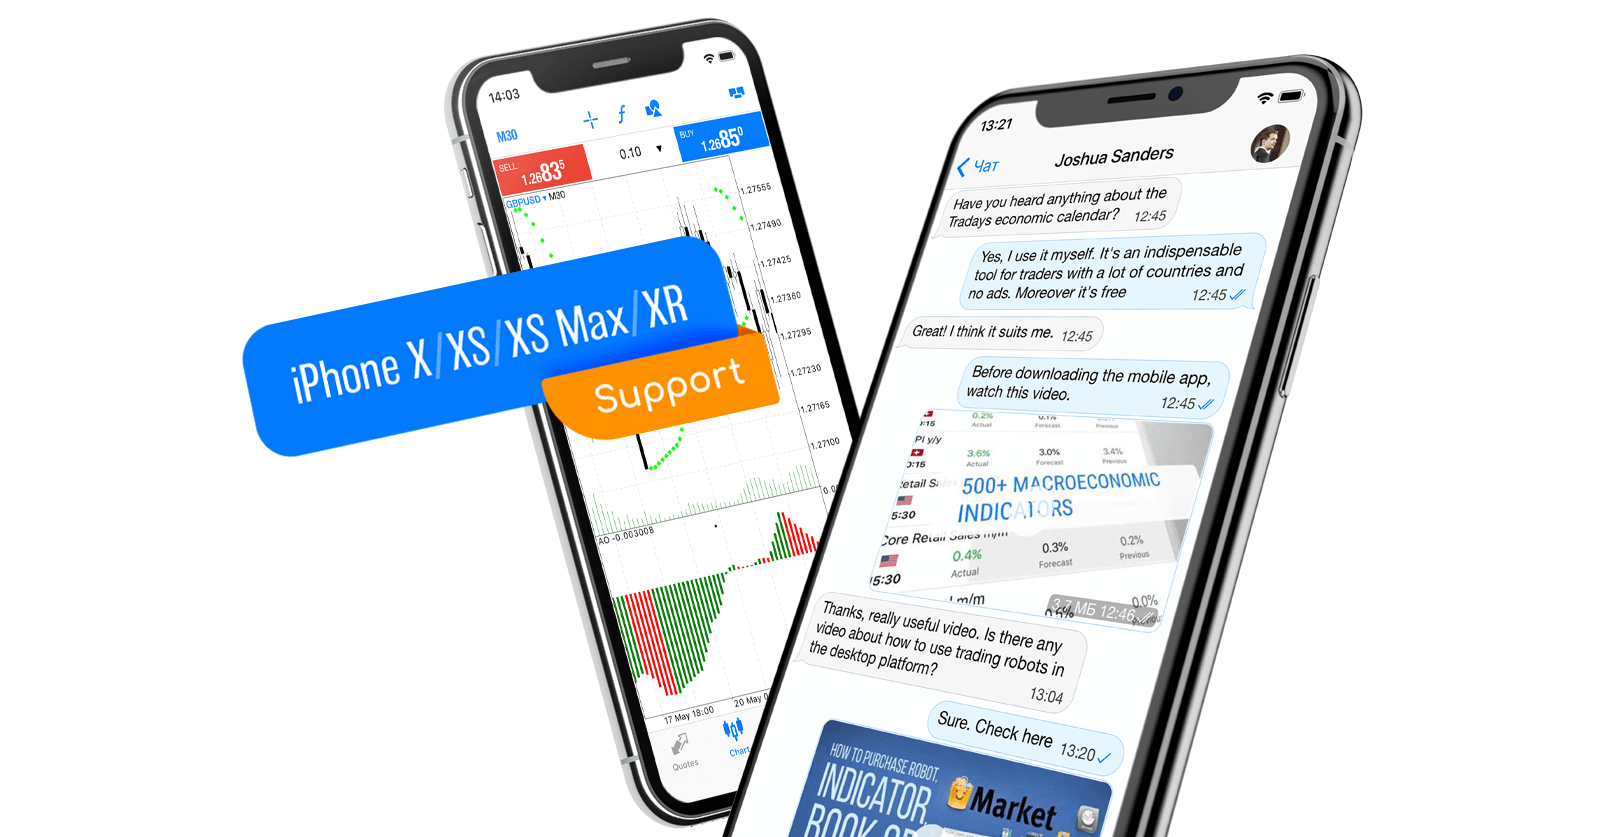 MetaTrader 5 iOS内部支持iPhone X/XS/XS Max/XR